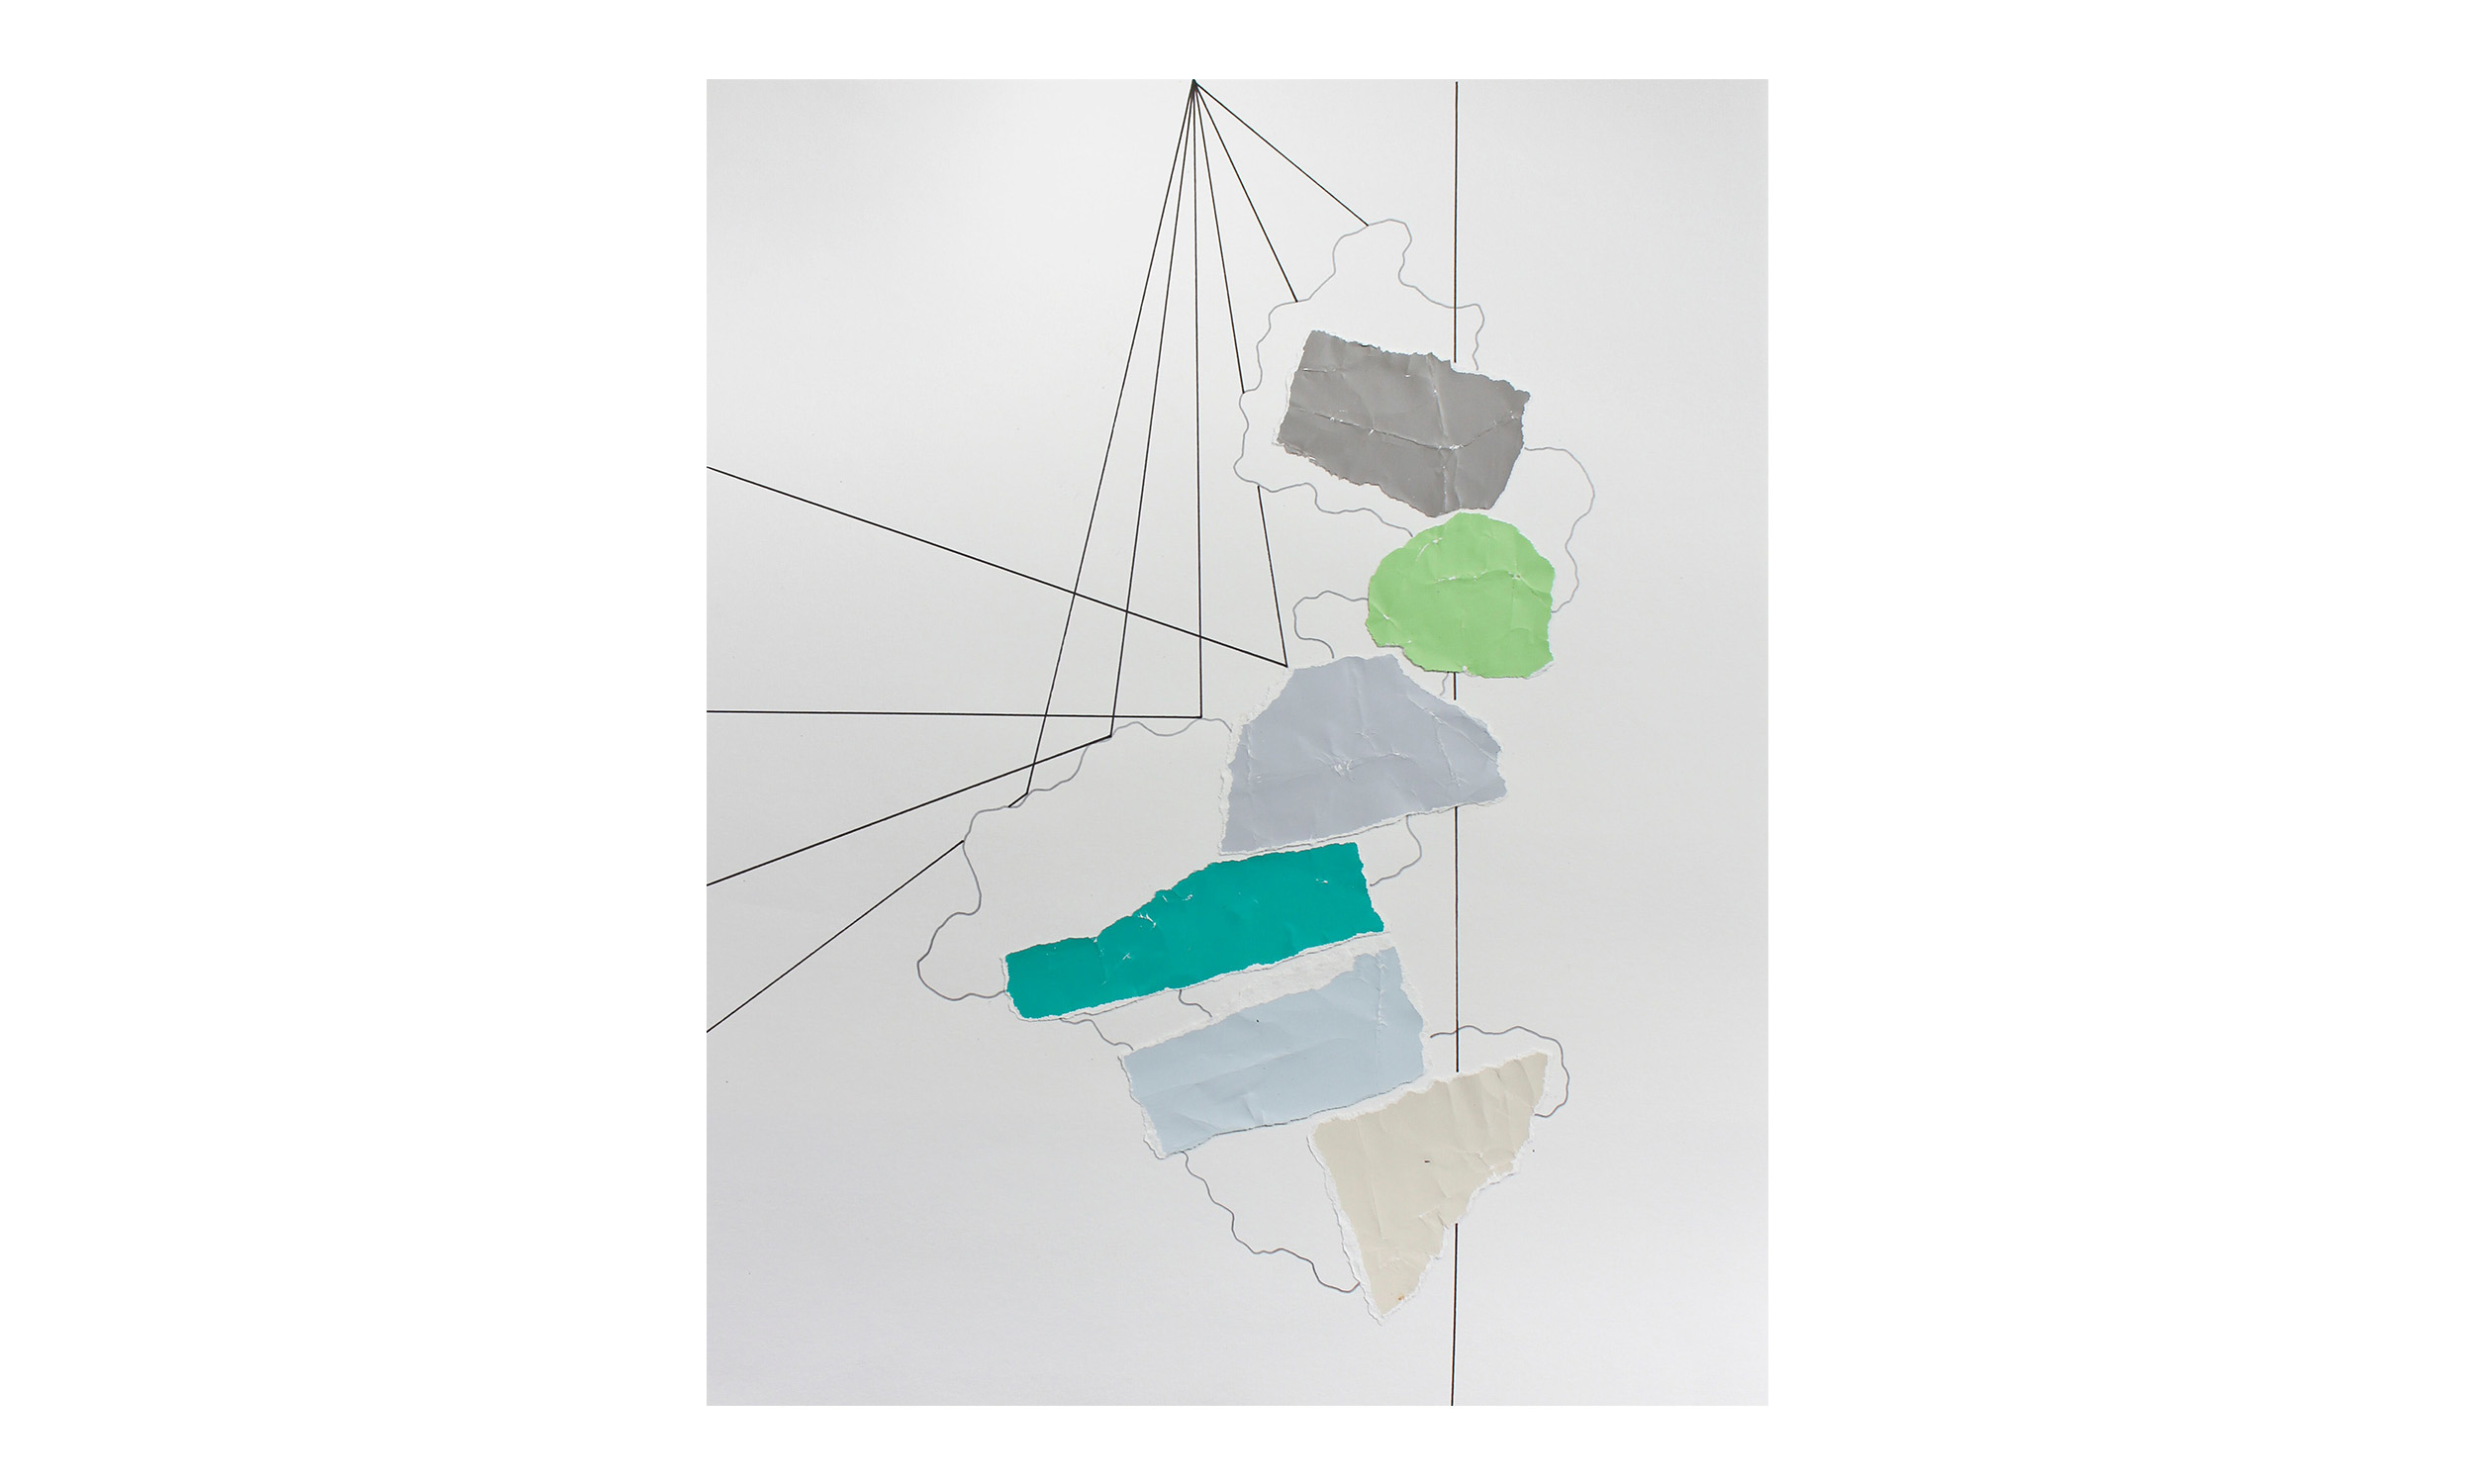 Imaginary Maps 11 , paint chips on paper, pen, pencil, powdered graphite, 11 x 14 inches, unframed, $200    Contact us for purchase